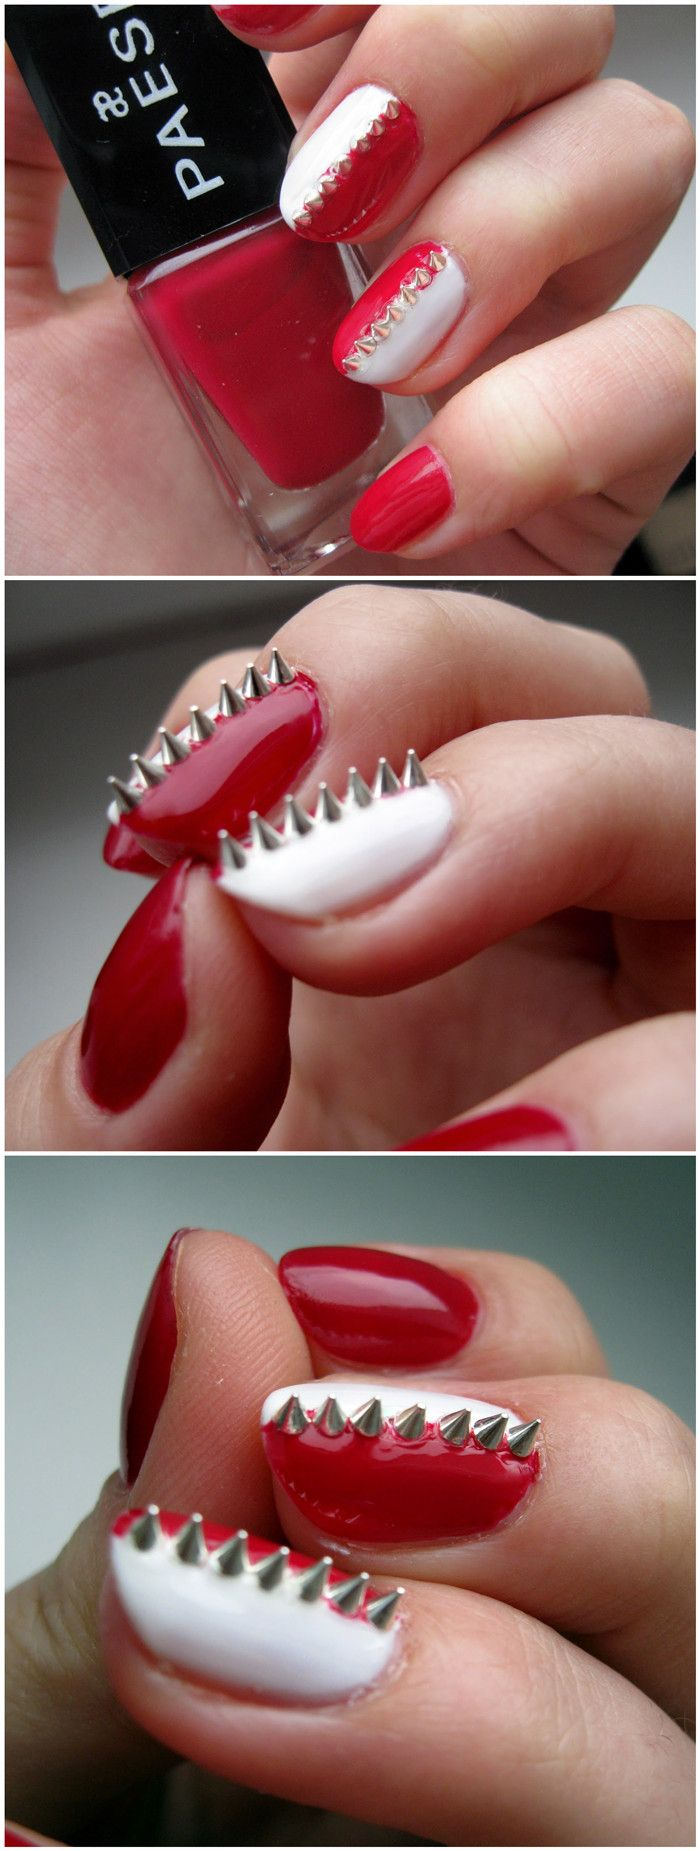 awesome nails! so spikey. #spikes #mani #nailart #studs | Cool Nails ...